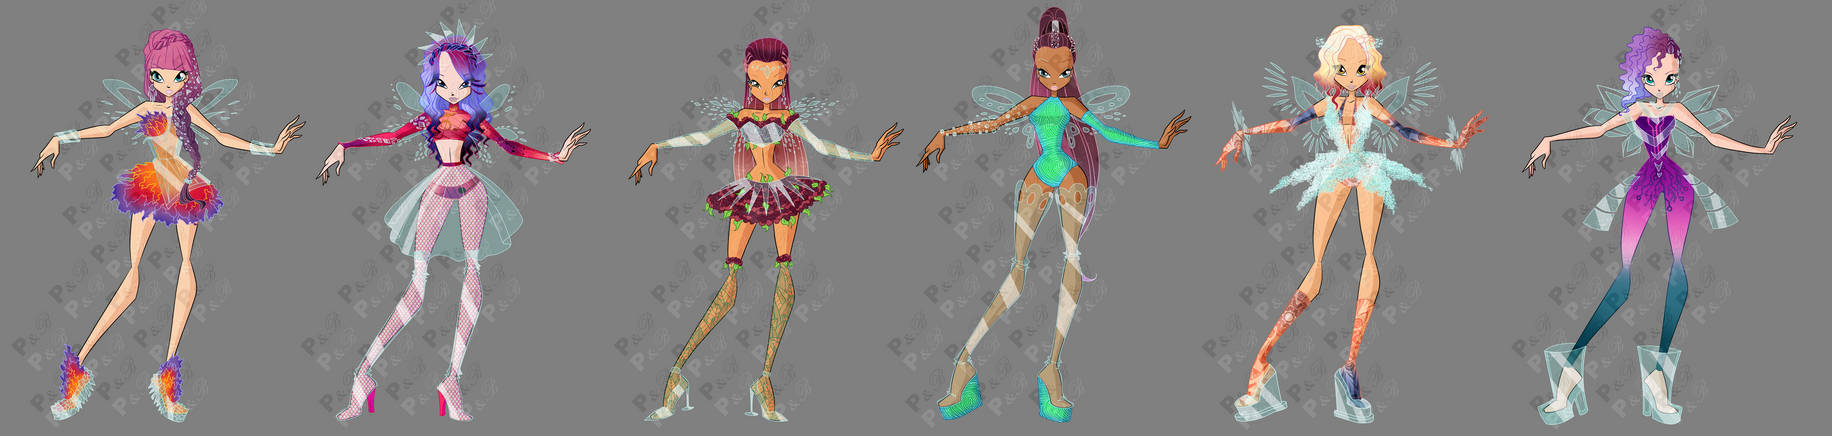 Winx Glassix transformation- Concept art (+story) by ...